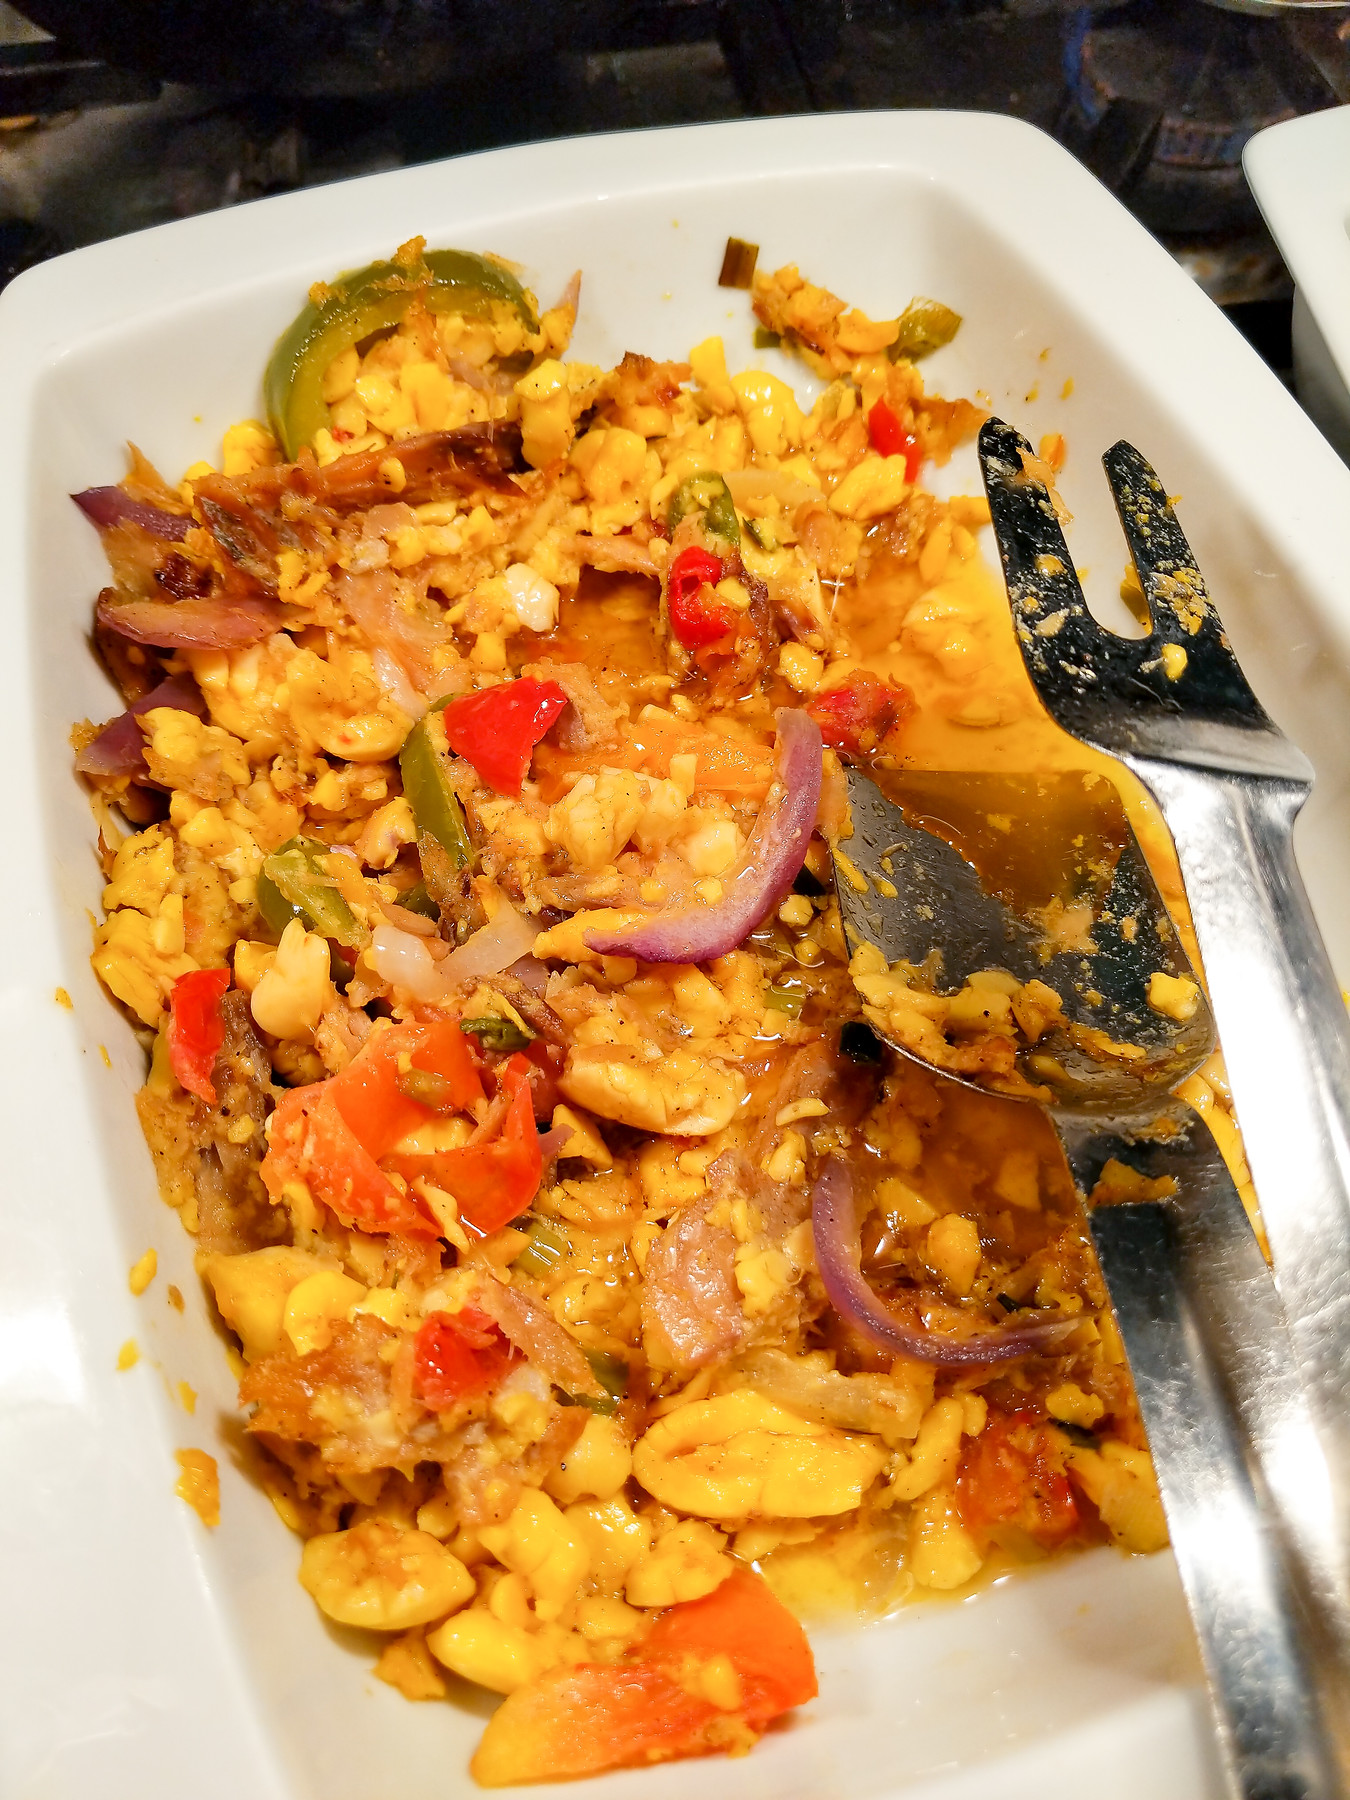 Ackee and salt fish is just one traditional Jamaican food you need to try. The ultimate guide for what to eat in Jamaica, our best picks for 27 dishes, 6 desserts and 12 drinks you won't want to leave the island without trying.